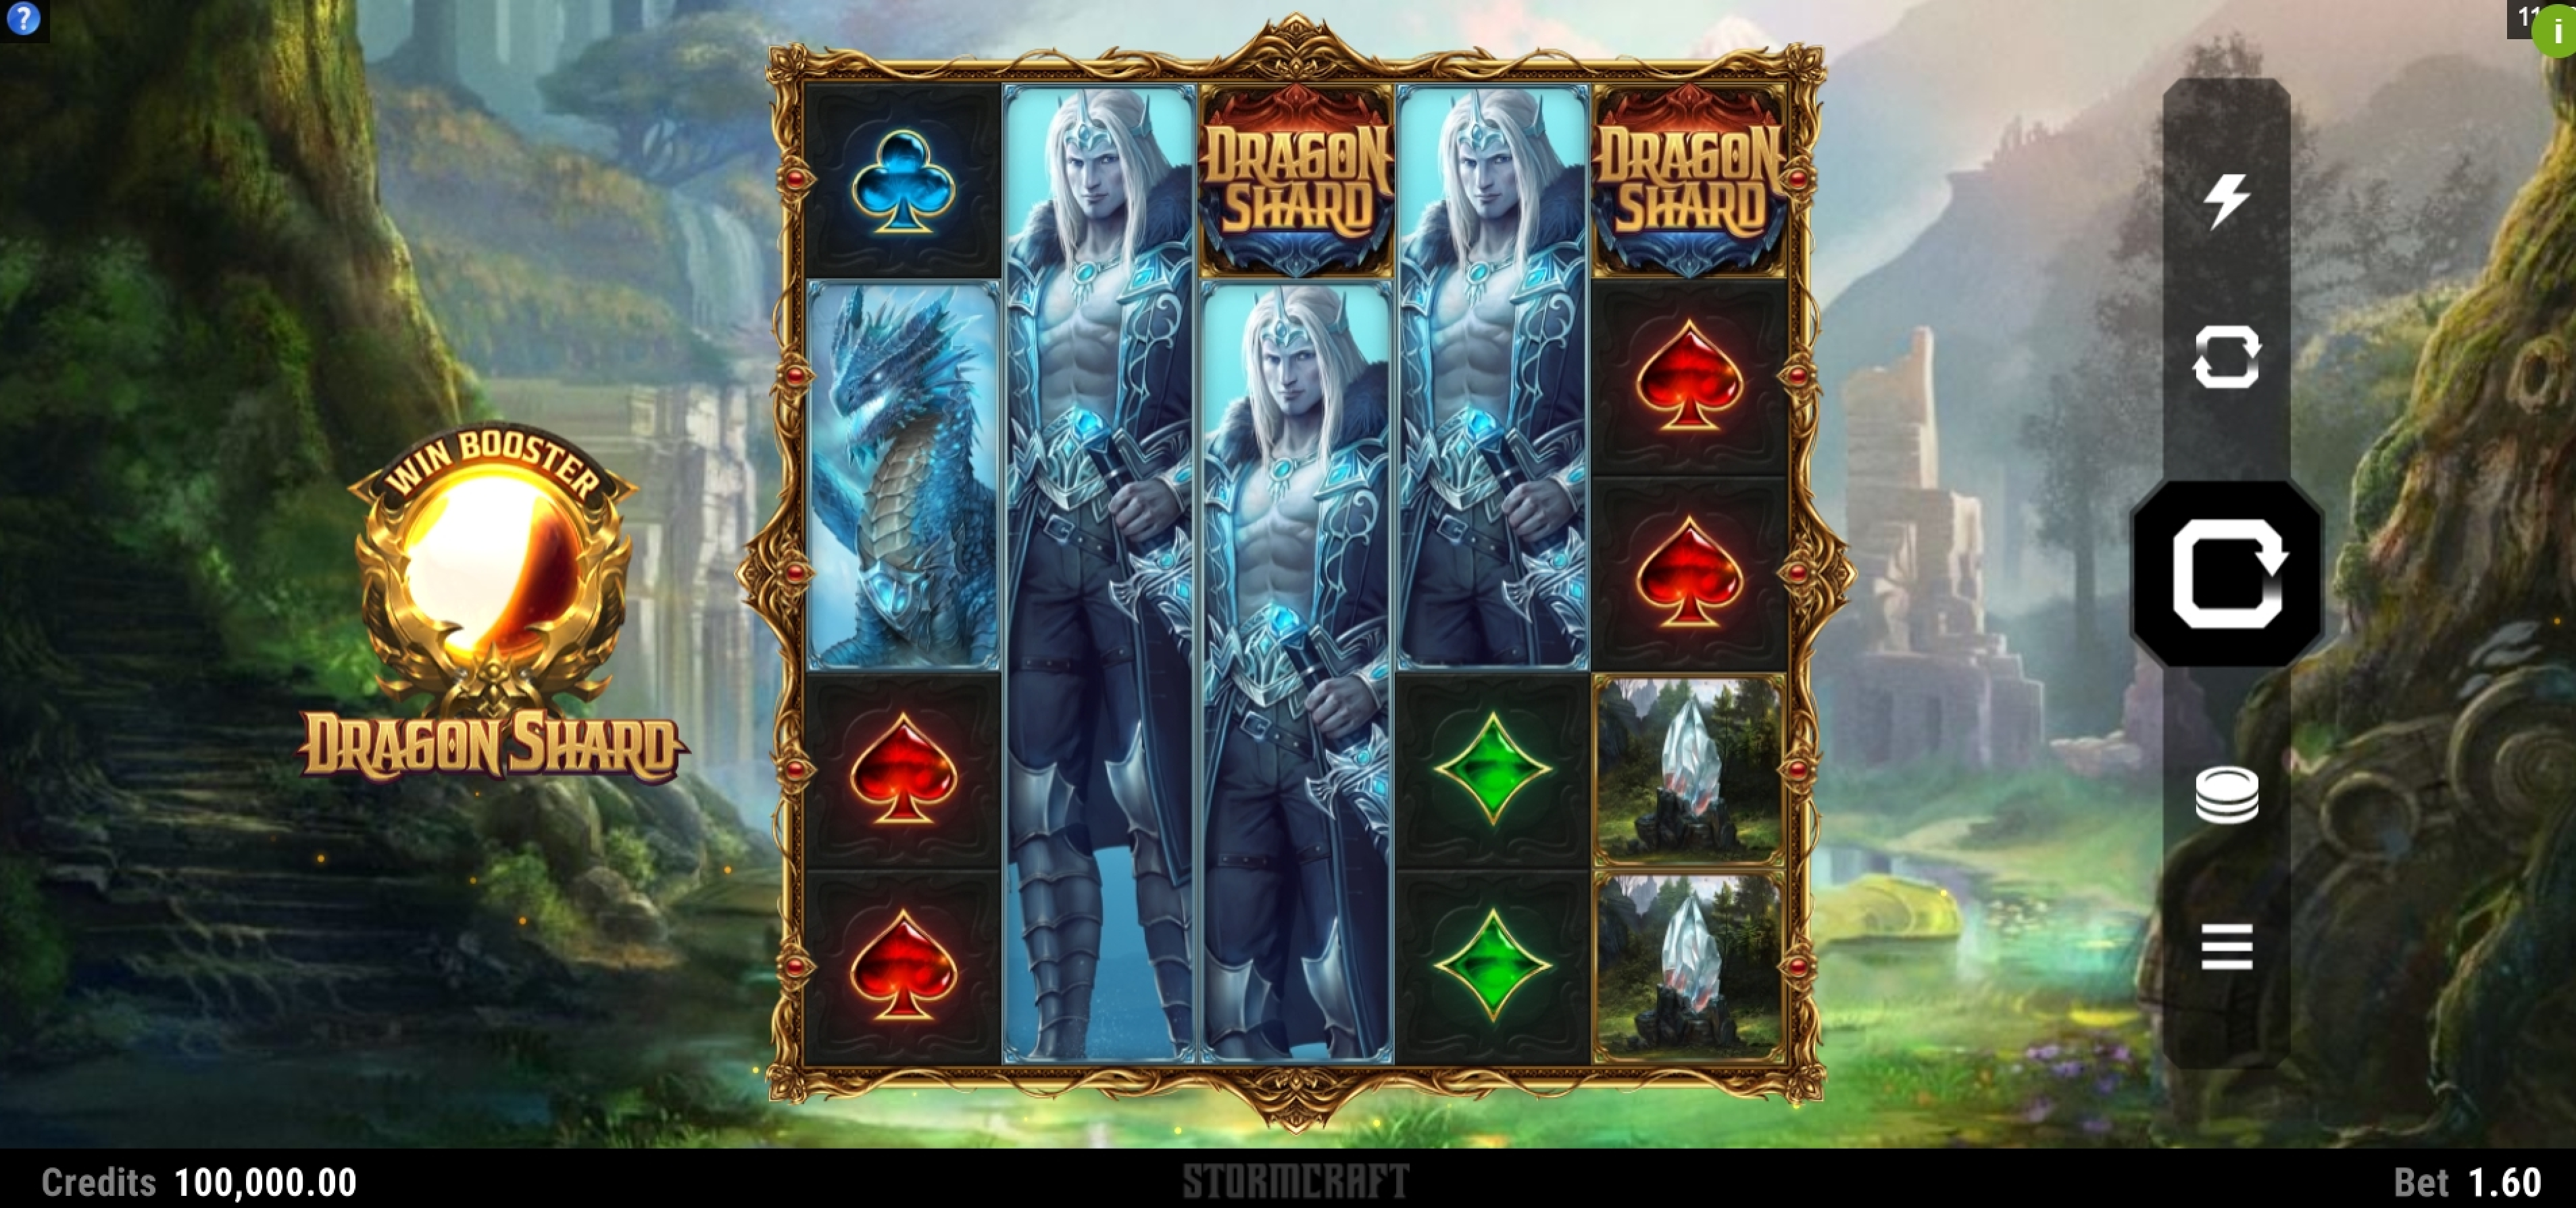 Reels in Dragon Shard Slot Game by Stormcraft Studios